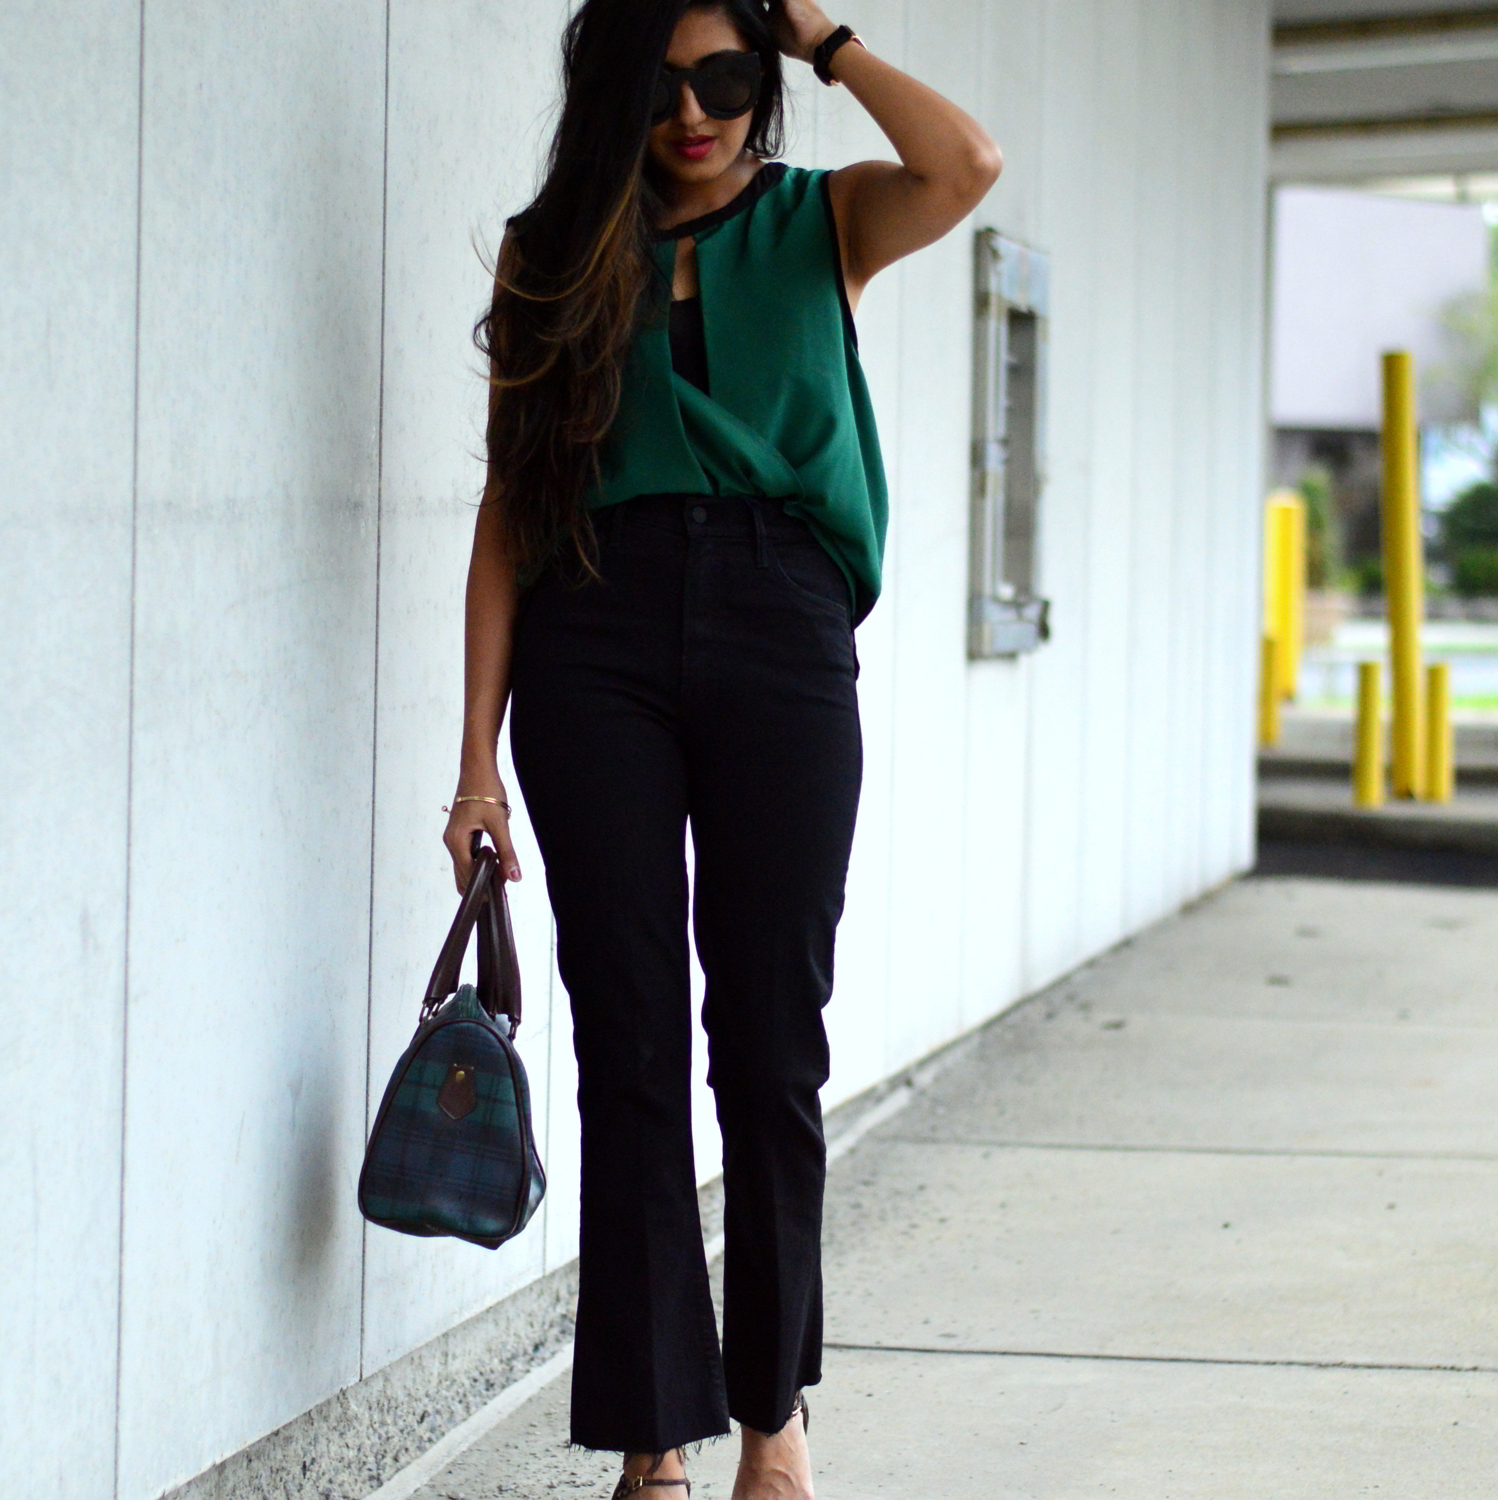 workwear-fall-style-emerald-silk-blouse-cropped-flared-jeans-blogger-outfit 2